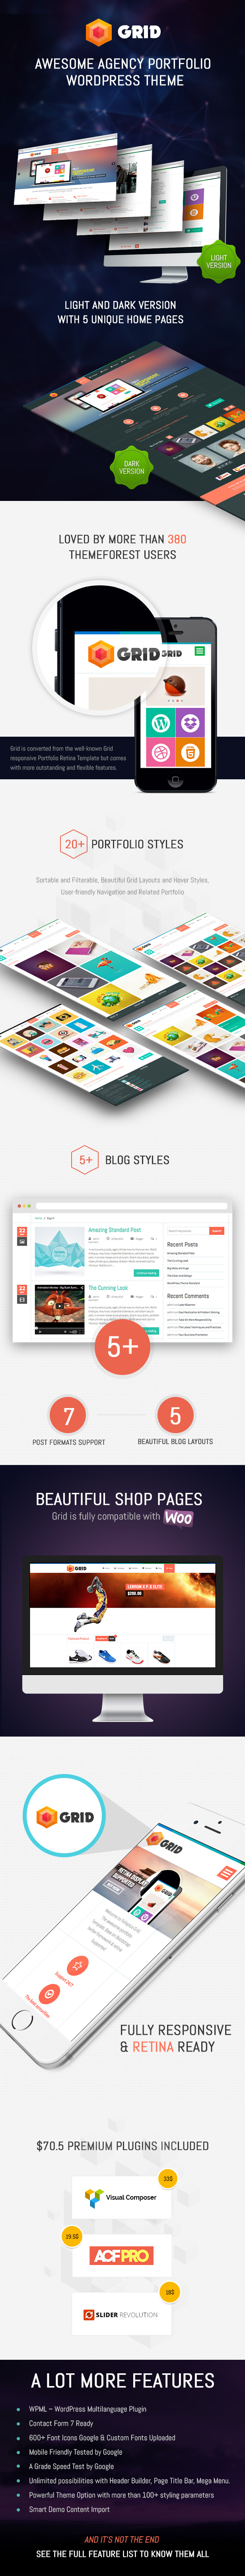 Netz - WordPress Responsive Agency Portfolio Layout - 3